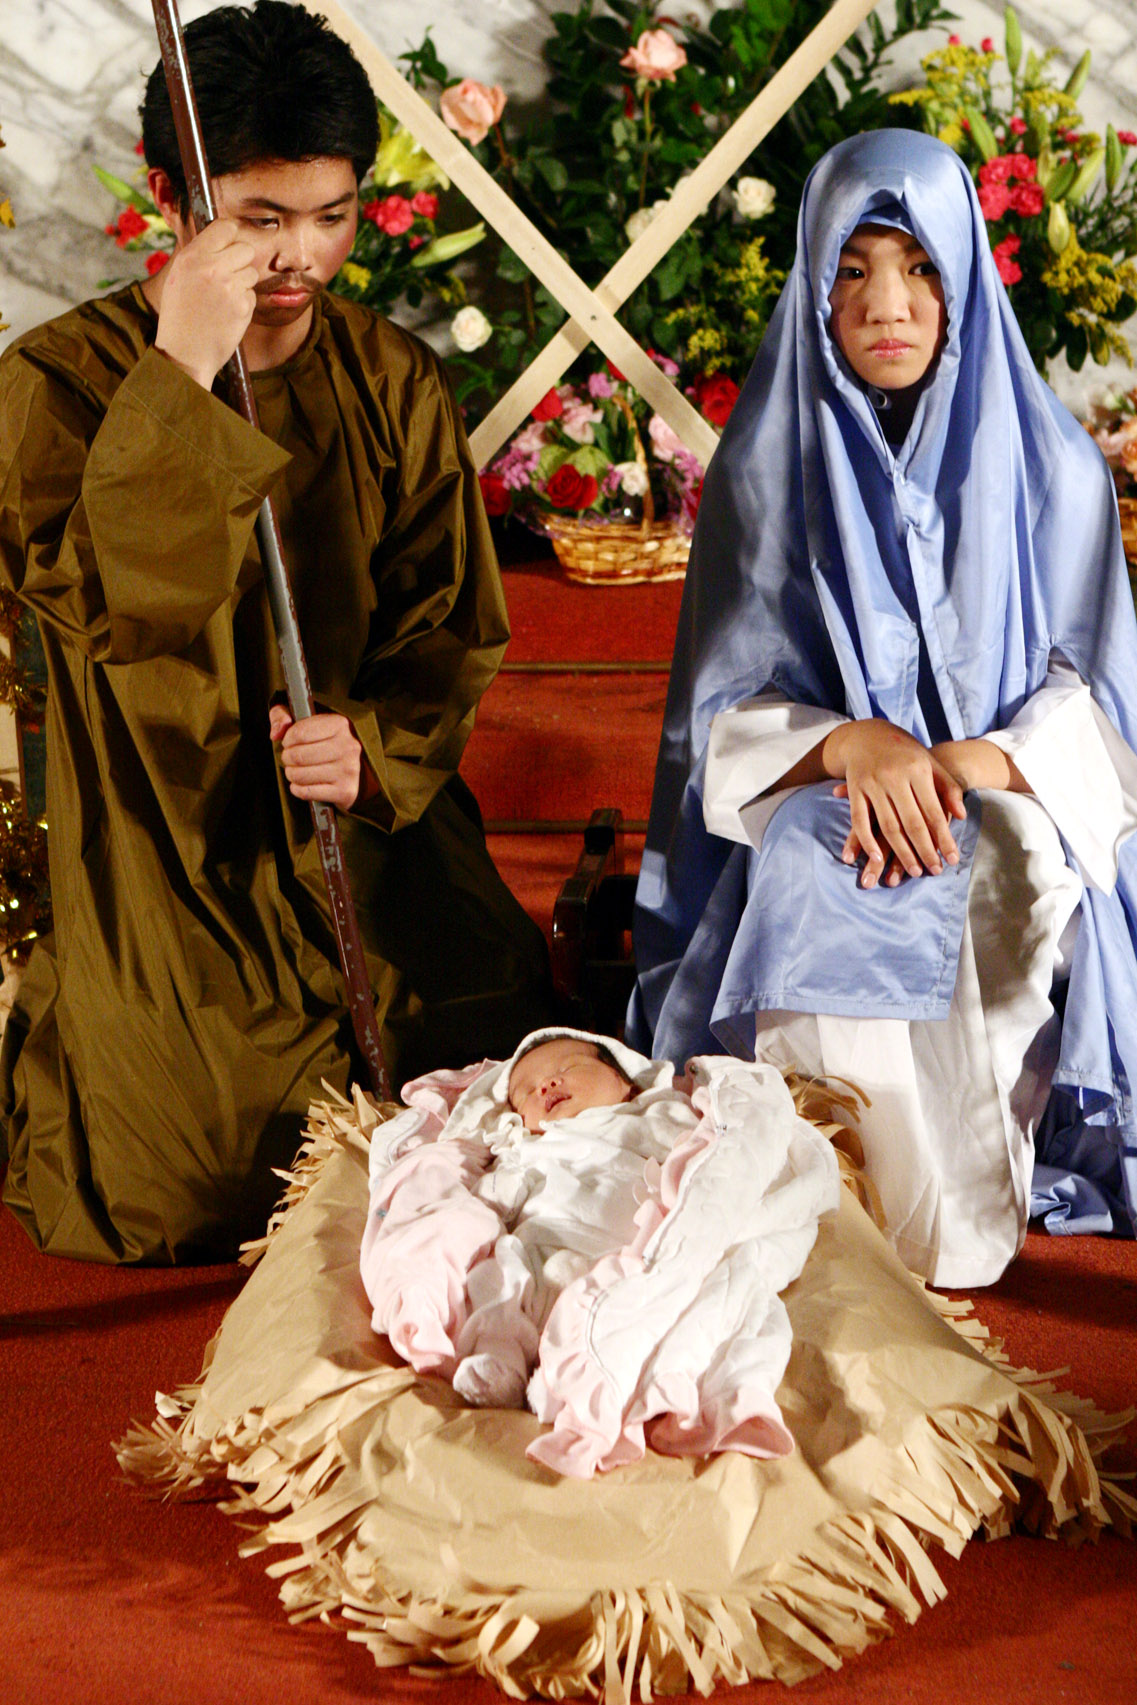 Children in costume perform a nativity scene as they celebrate Christmas at St. Christopher's Church in Taipei, December 24, 2006.